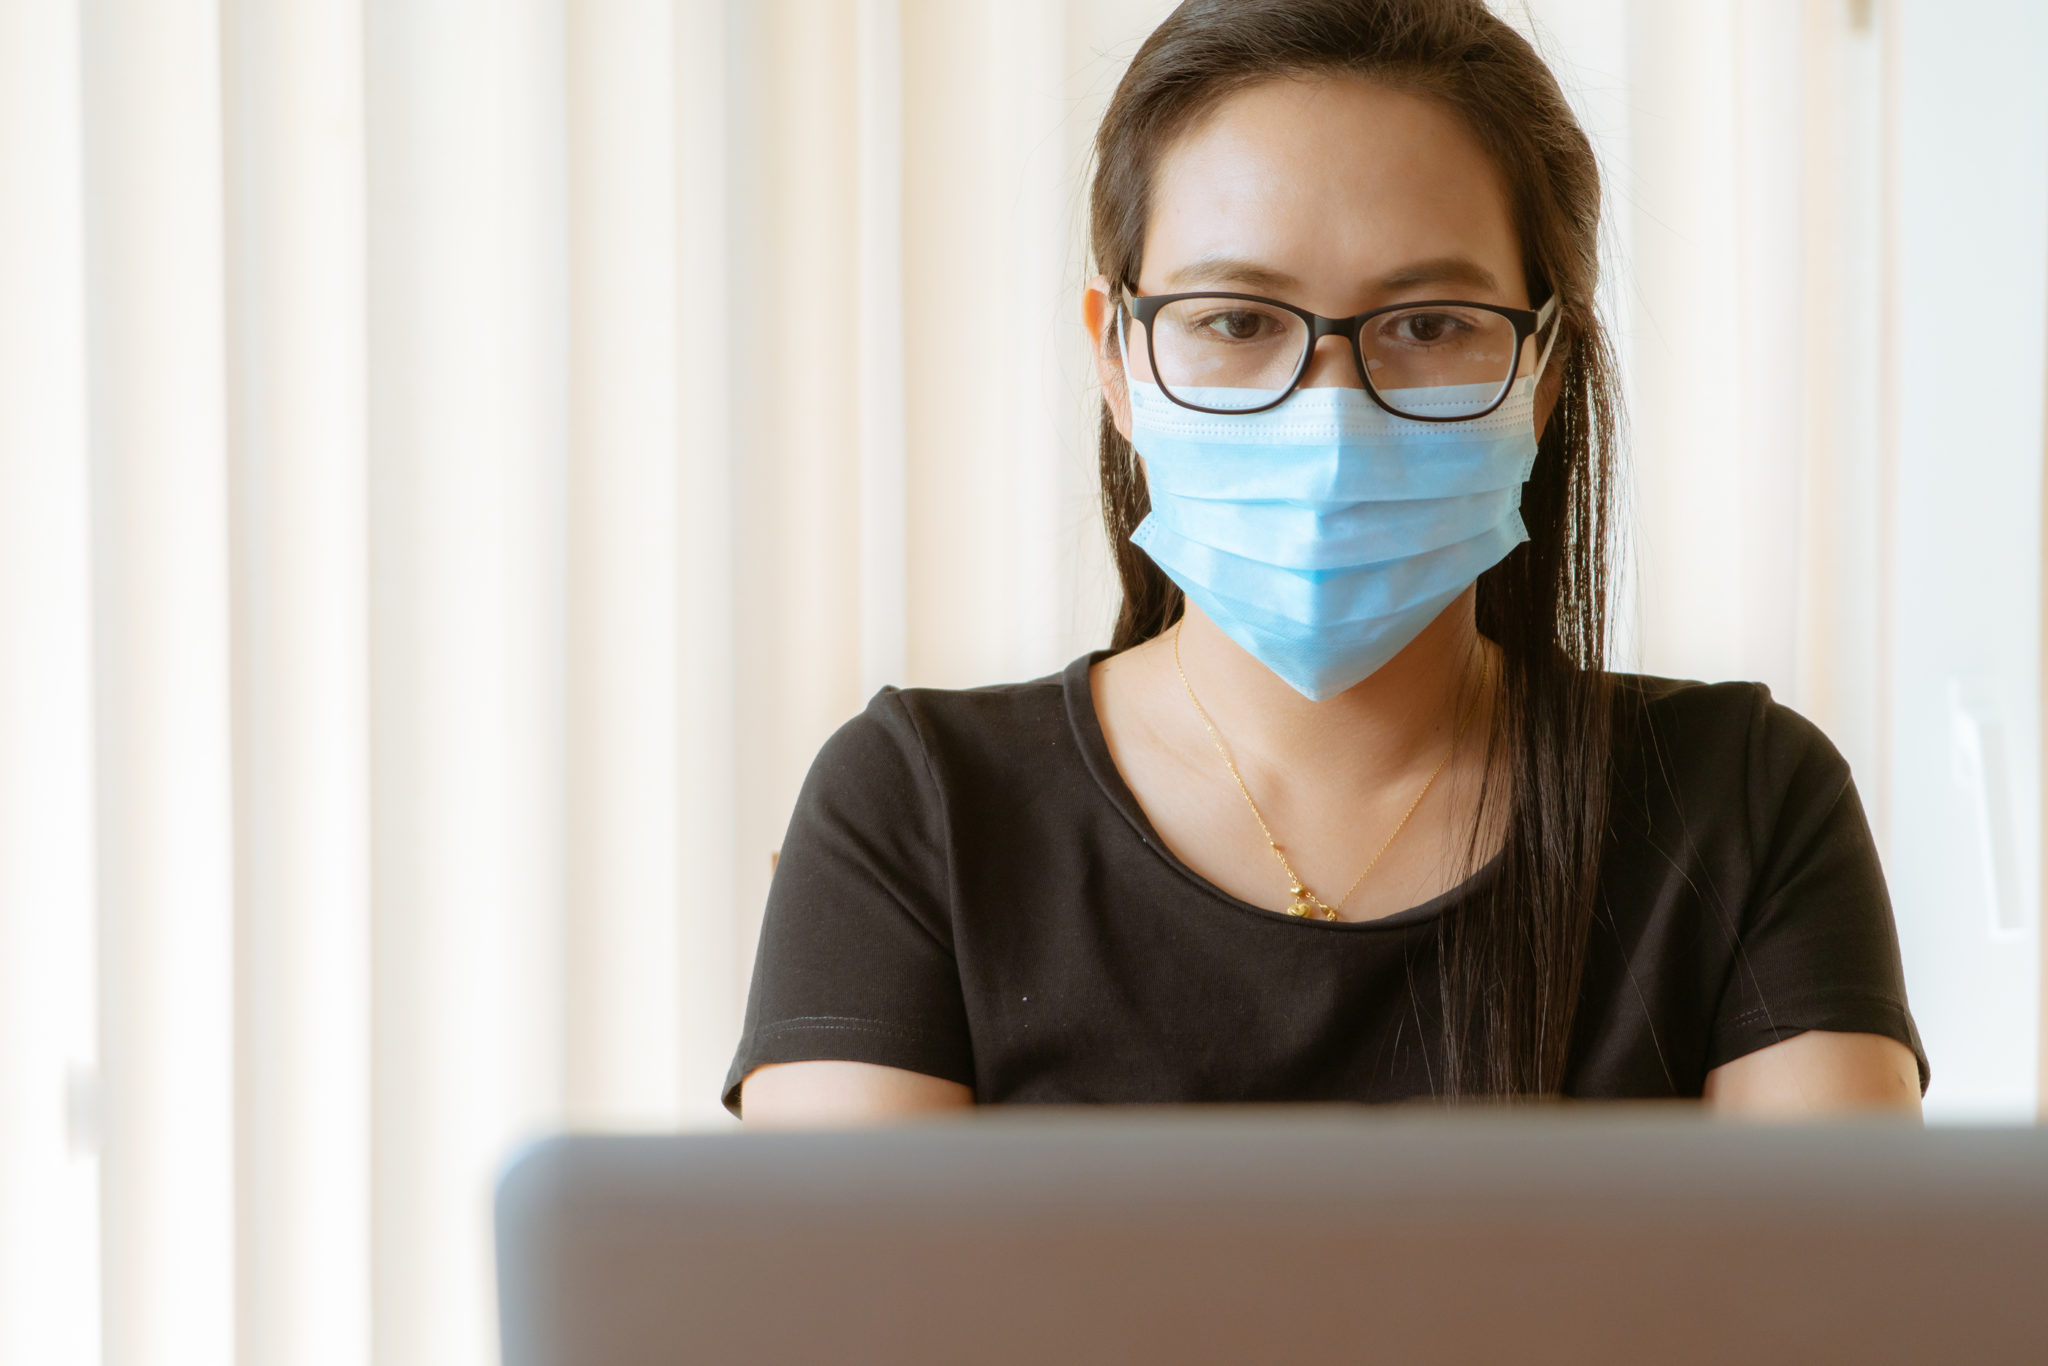 Woman With Face Mask Protection While Working, Coronavirus, Air